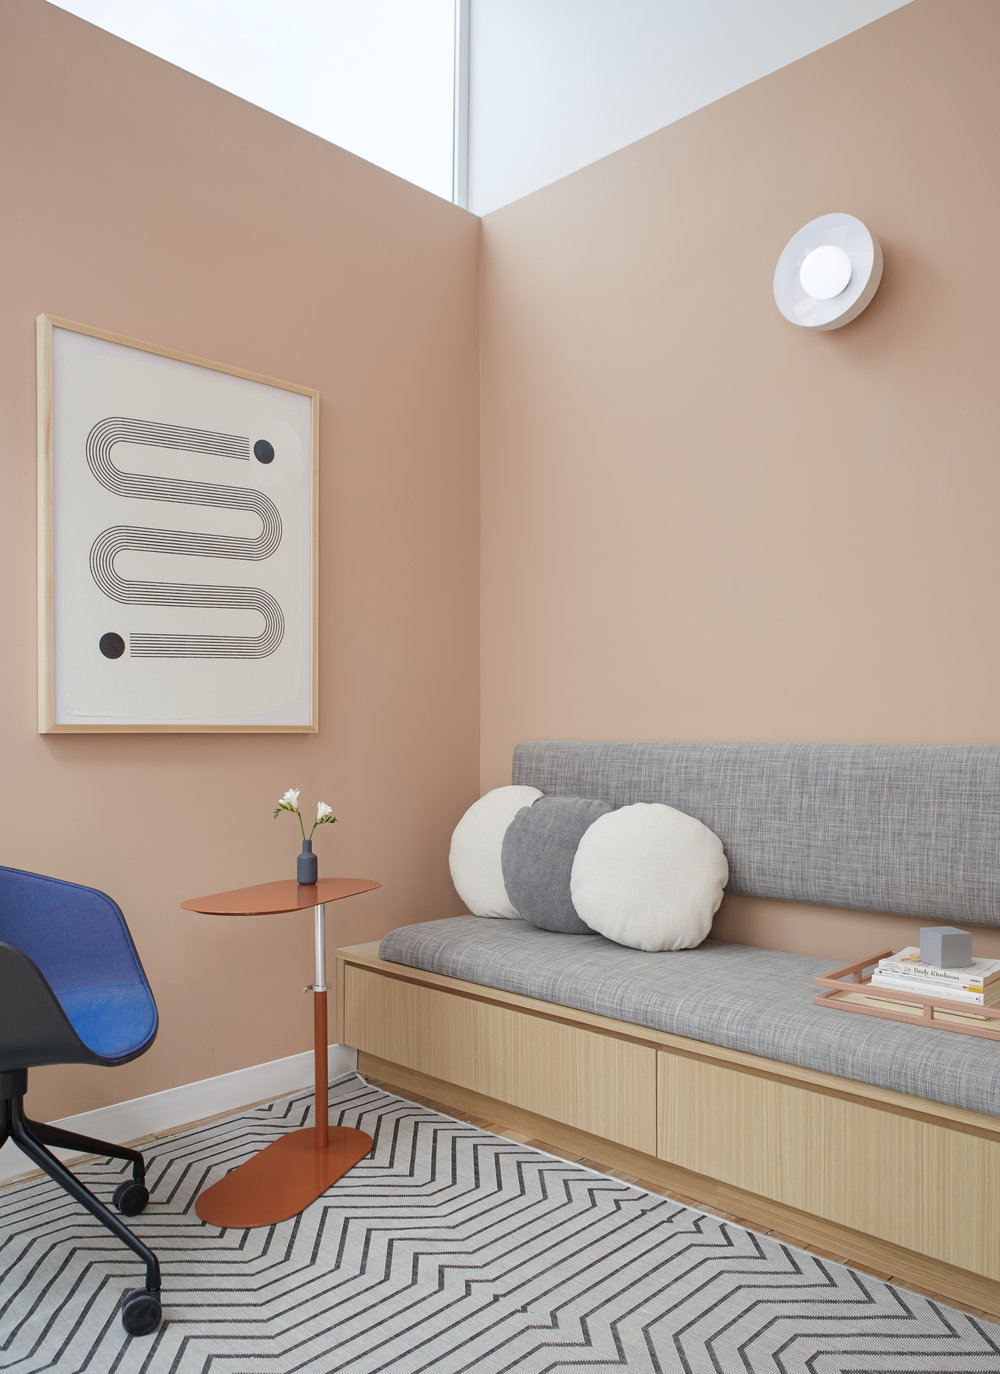 Parsley Health Consultation Room designed by 2LS Consulting Engineering